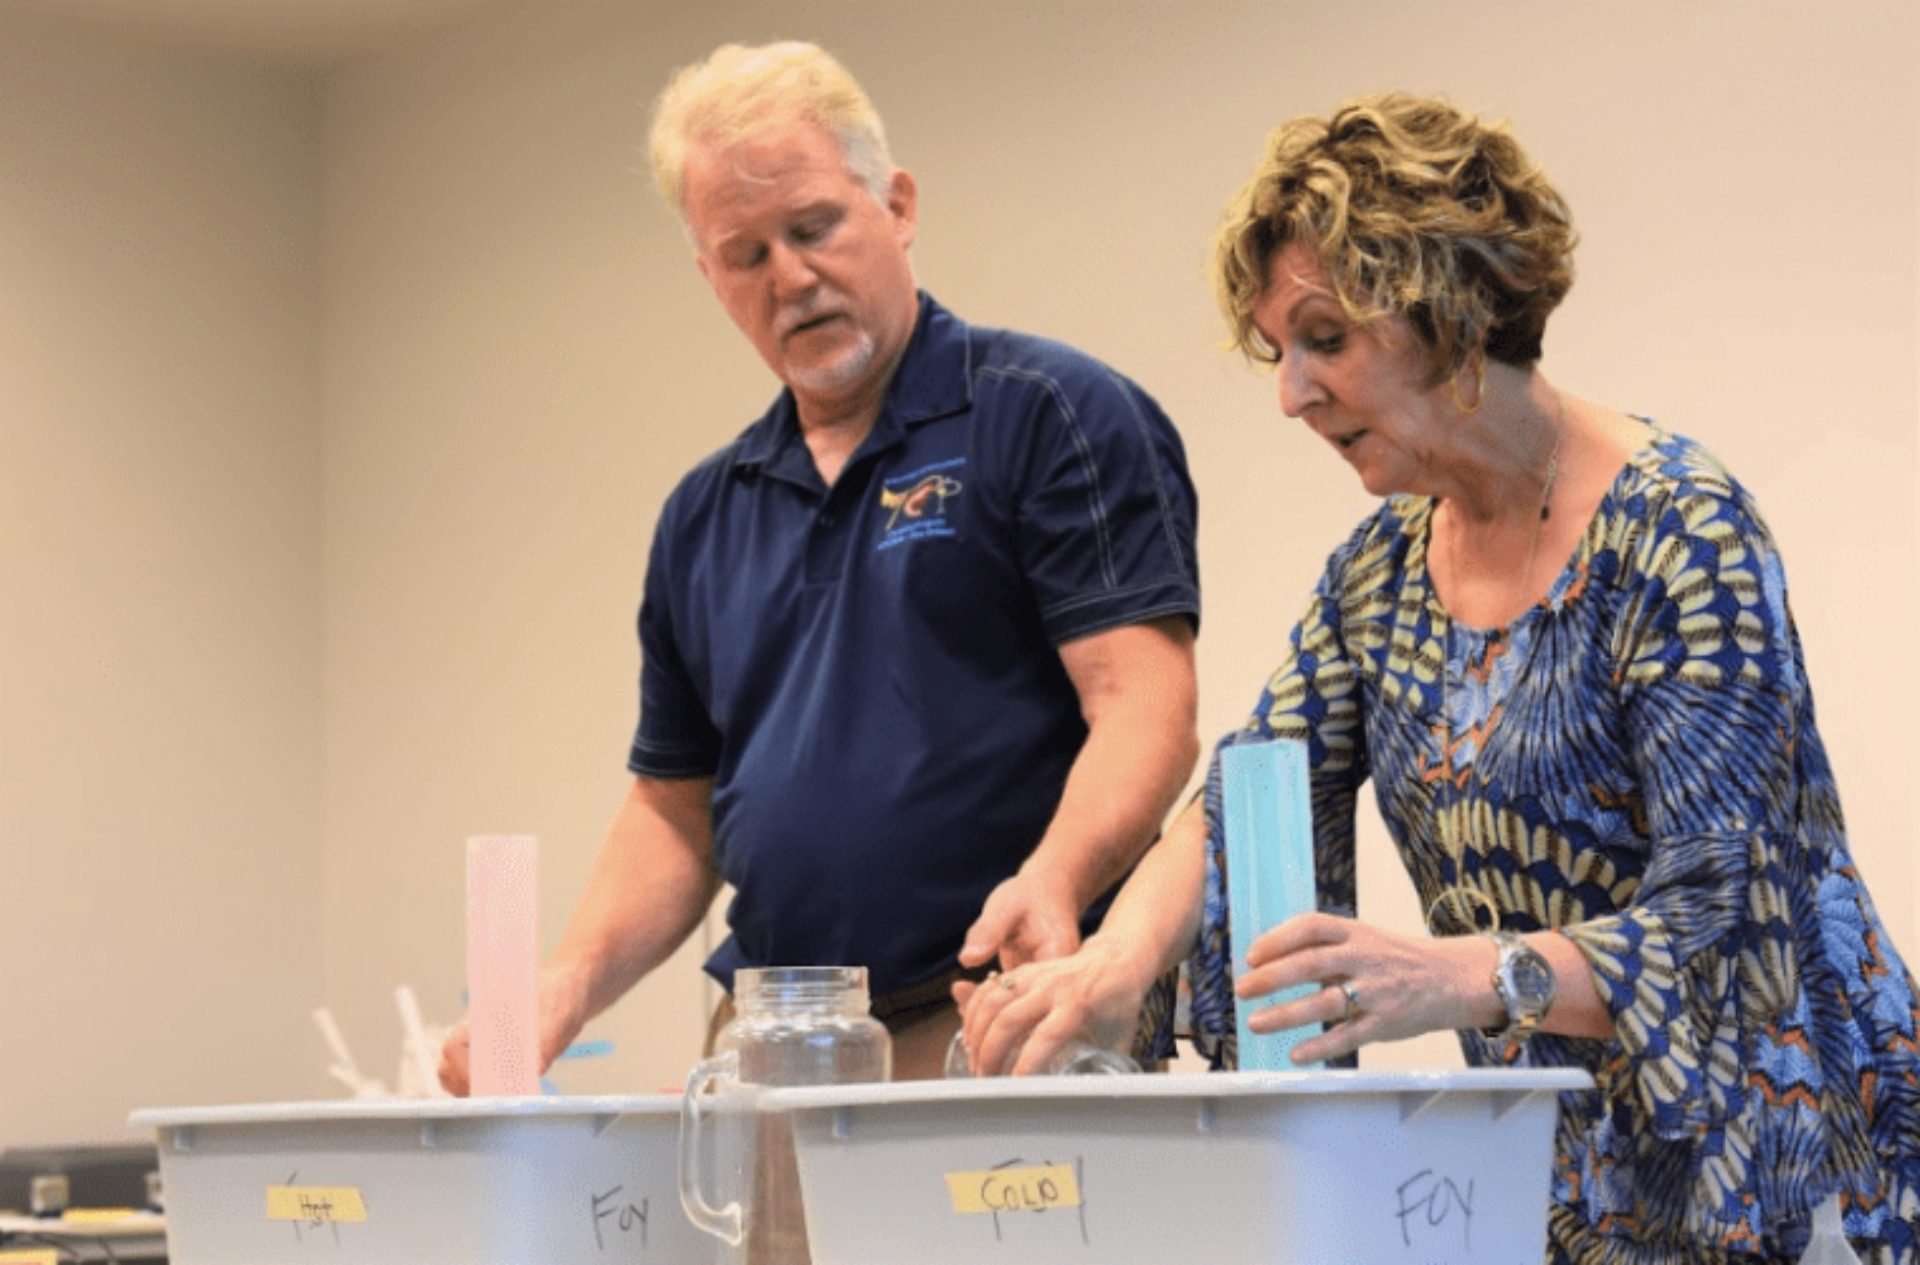 Science teacher Leigh Foy (right) couldn't find climate education materials so she and her husband, chemistry professor Greg Foy (left) designed their own.